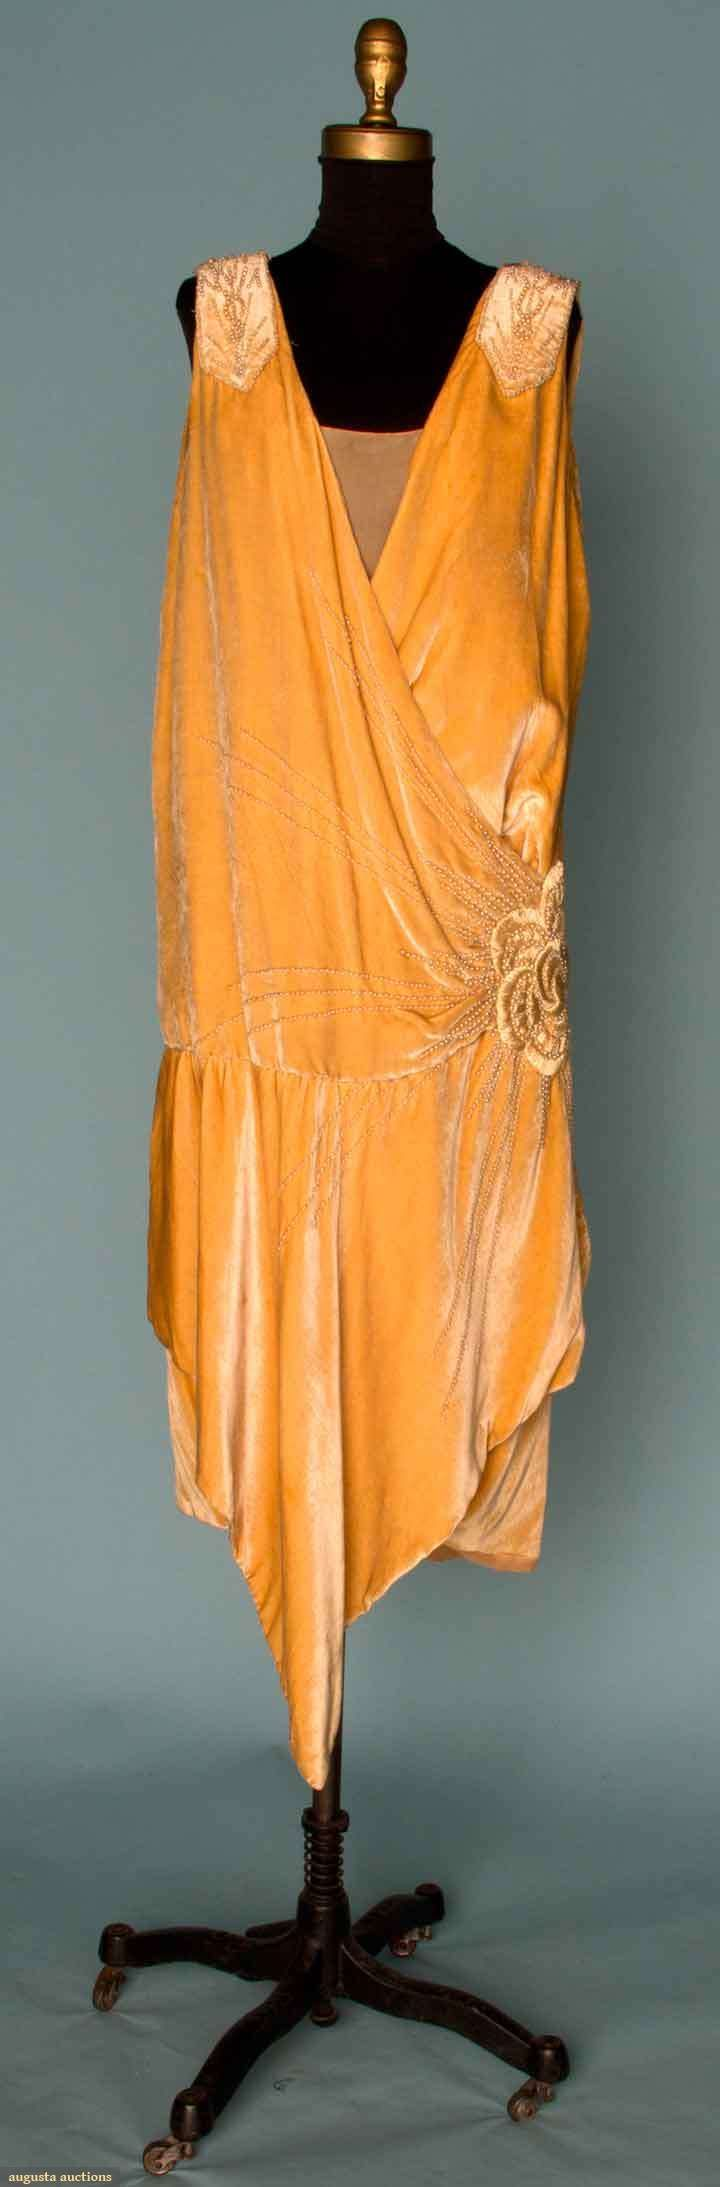 Mid-1920s Beaded velvet flapper dress: faun silk velvet, large Deco rose embroidered over left hip in silk floss and pearl beads, pearl bands descend from shoulder to low back neckline and tie over CB, a-symmetrical hem flounce, and silk lining.  Via Augusta Auctions.